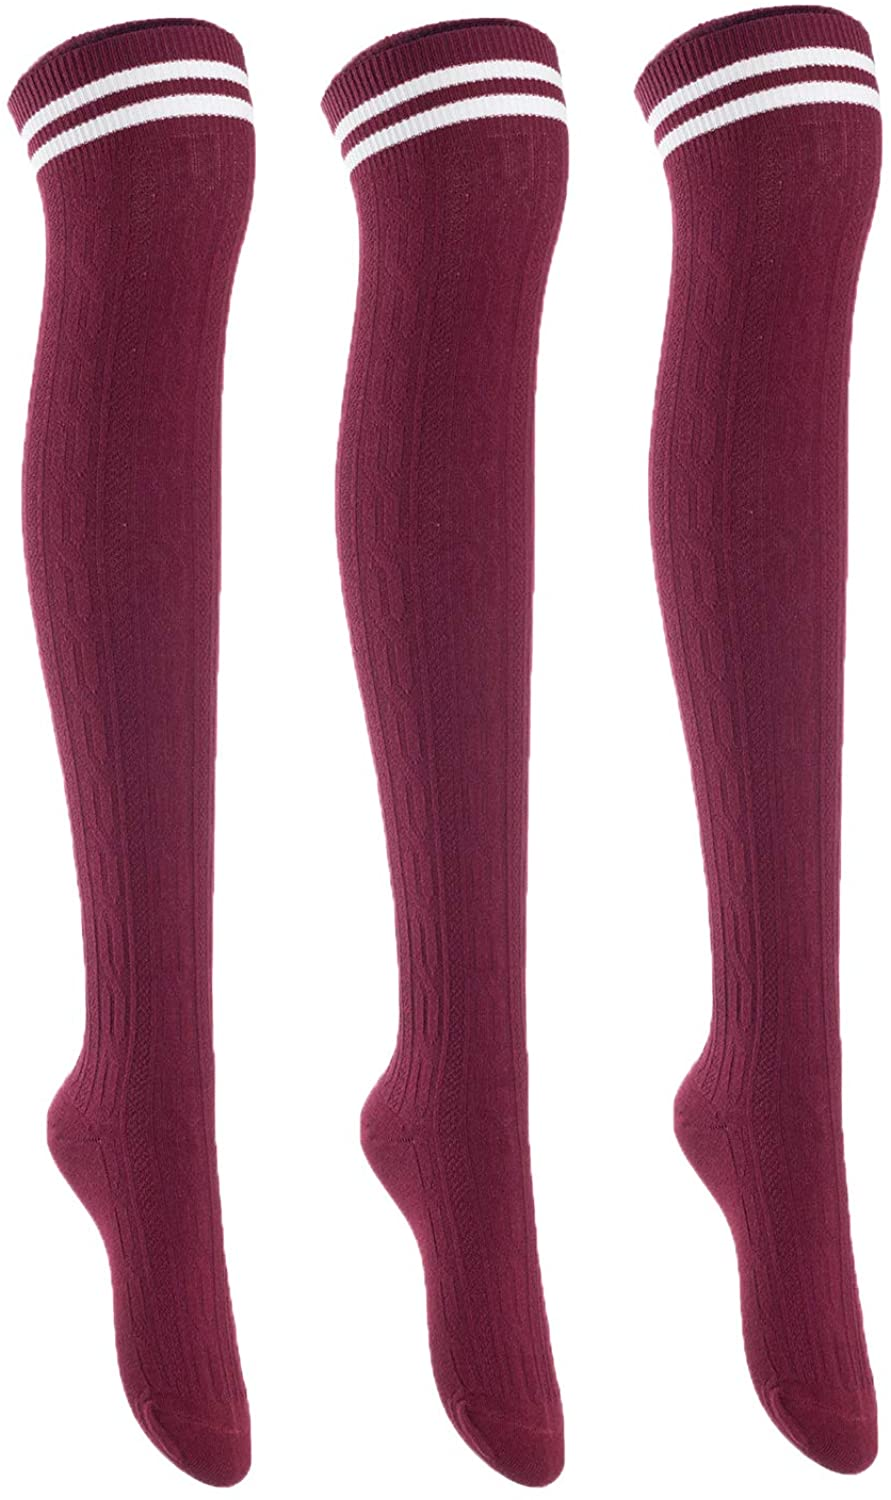 Lian LifeStyle Big Girl's Women's 3 Pairs Thigh High Cotton Socks Size 6-9 L1023